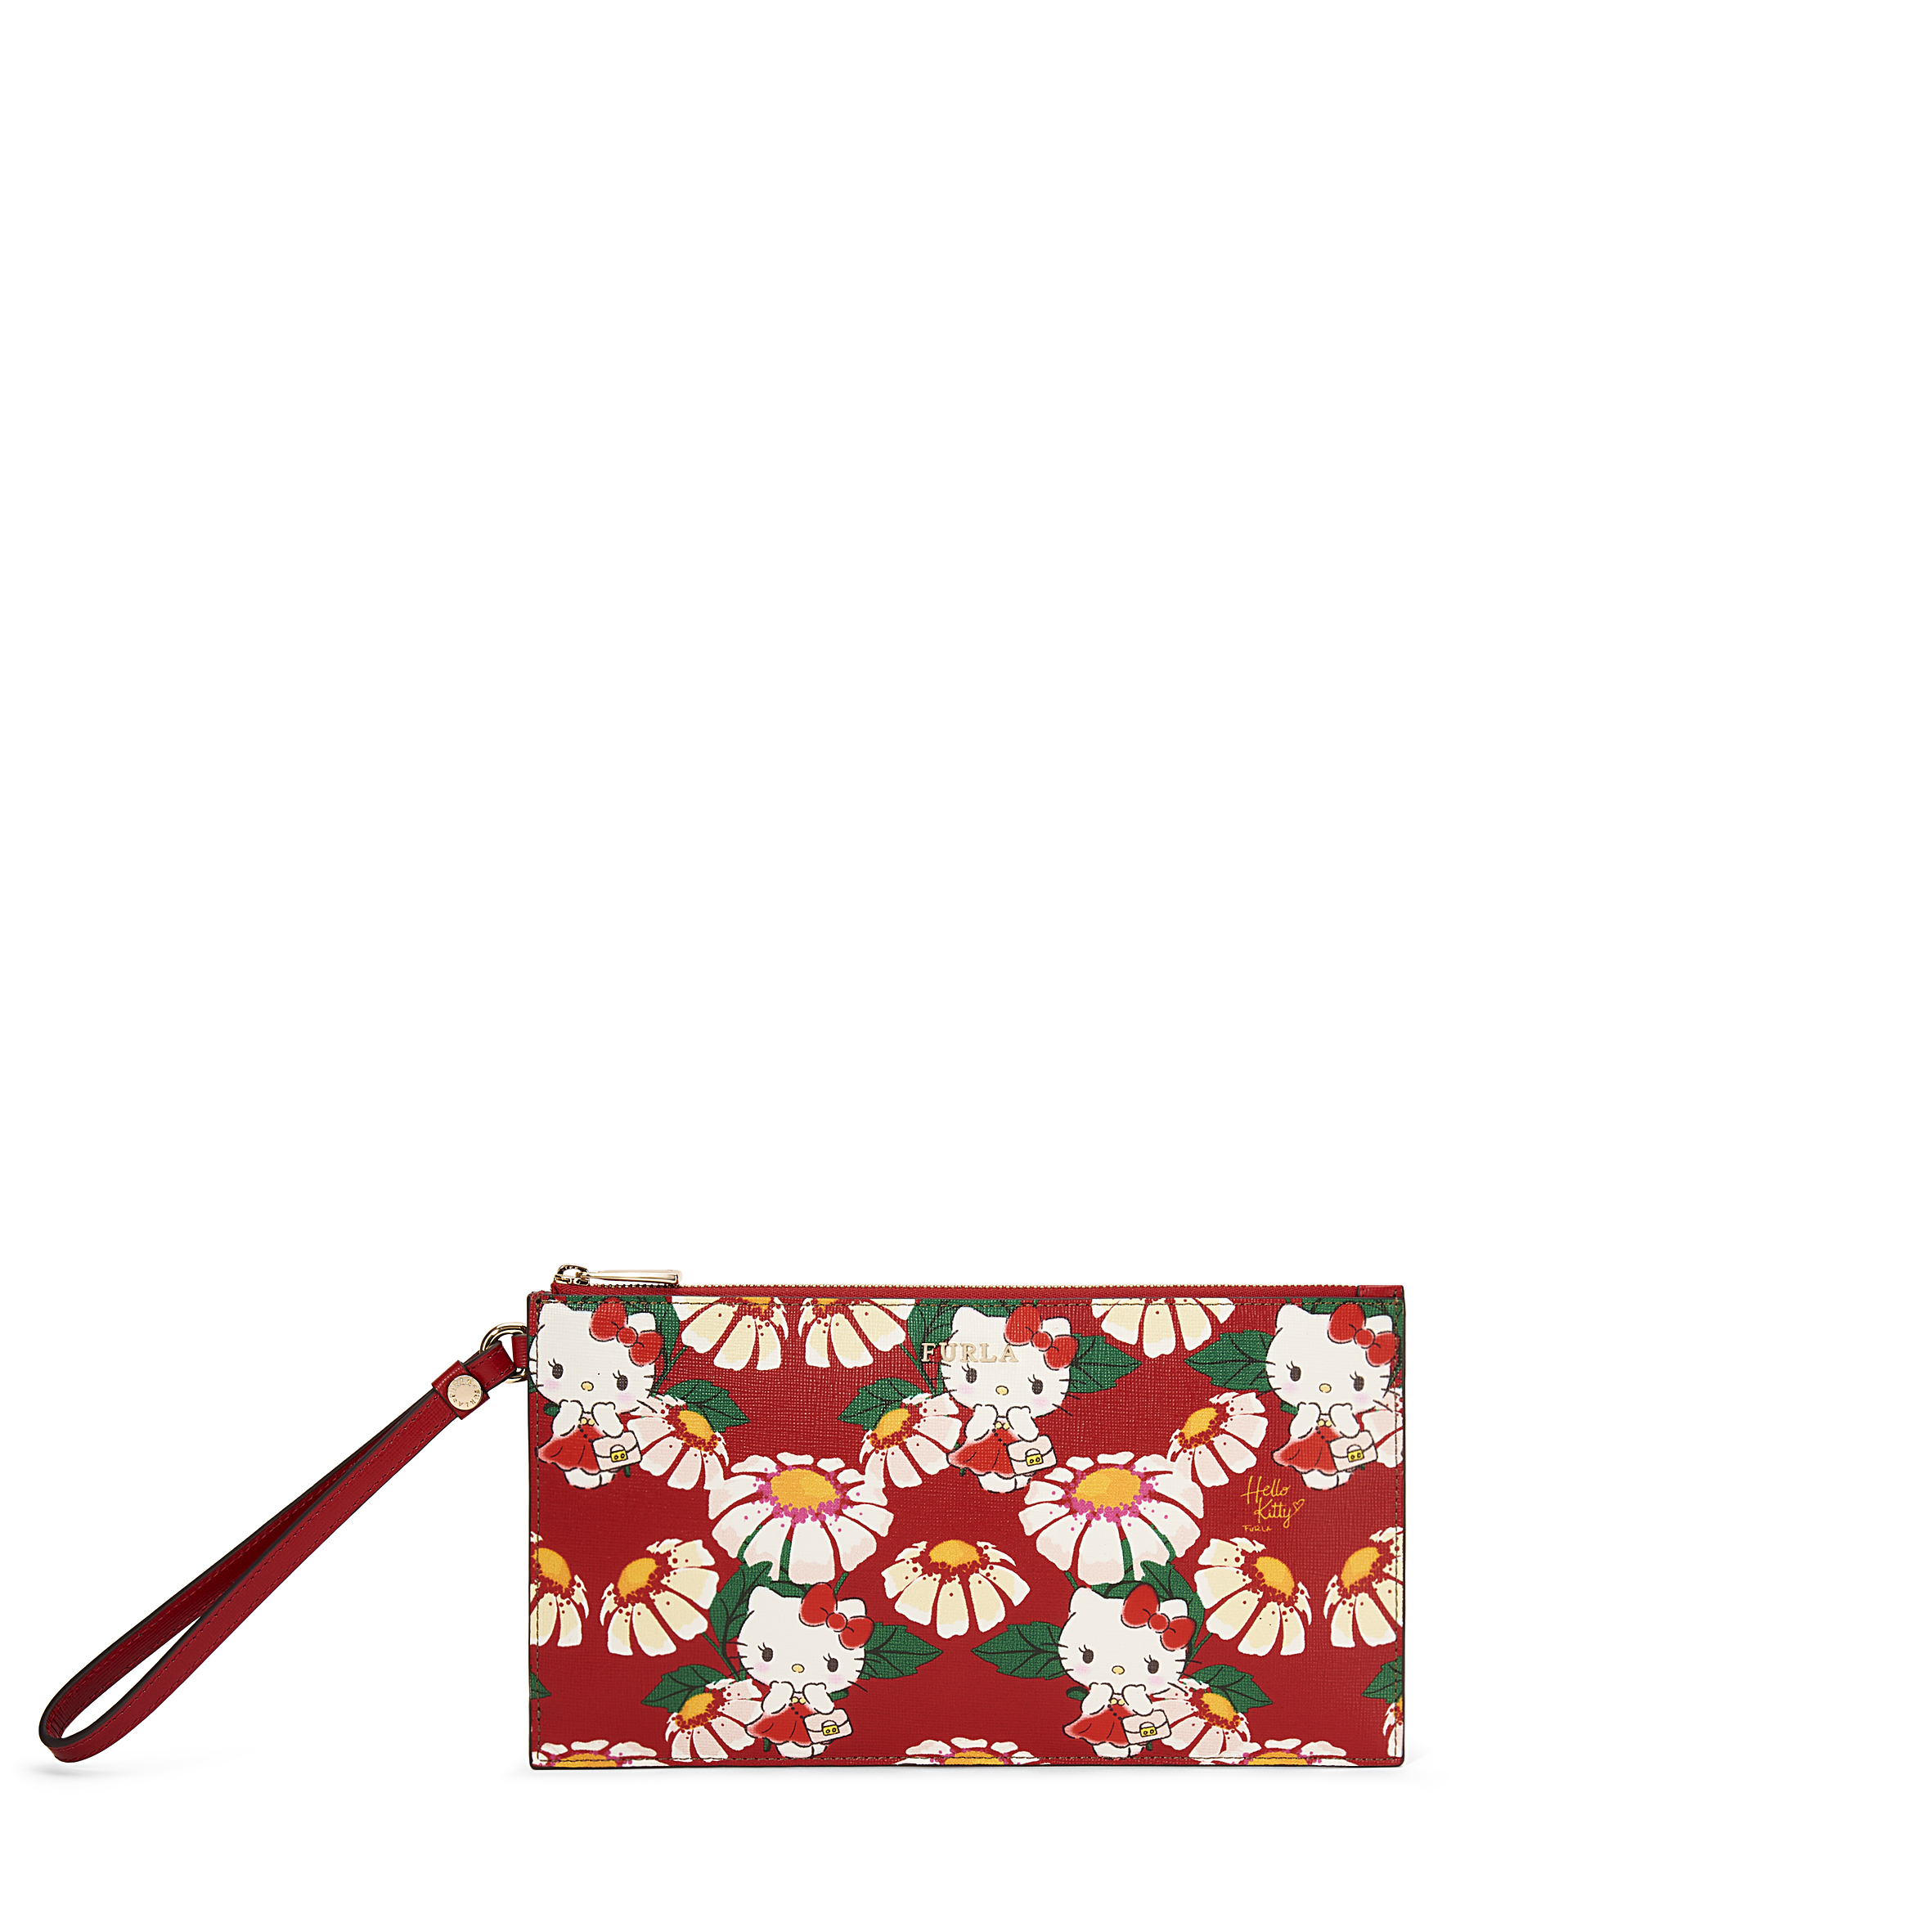 956043_ER95_KITTY XL ENVELOPE_ RUBY_6B